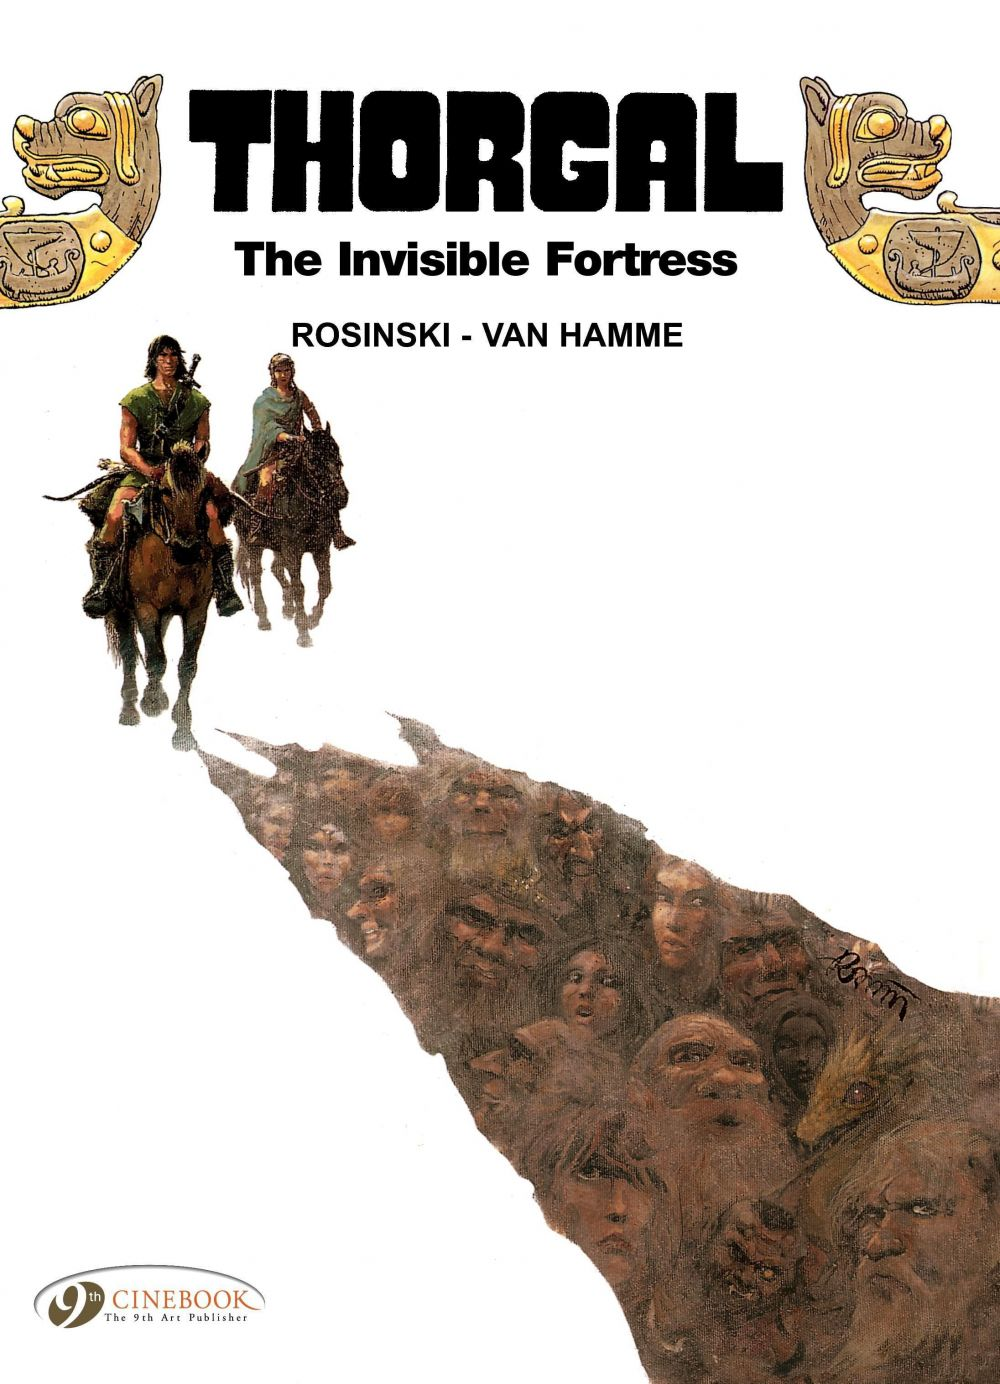 Thorgal - Volume 11 - The Invisible Fortress